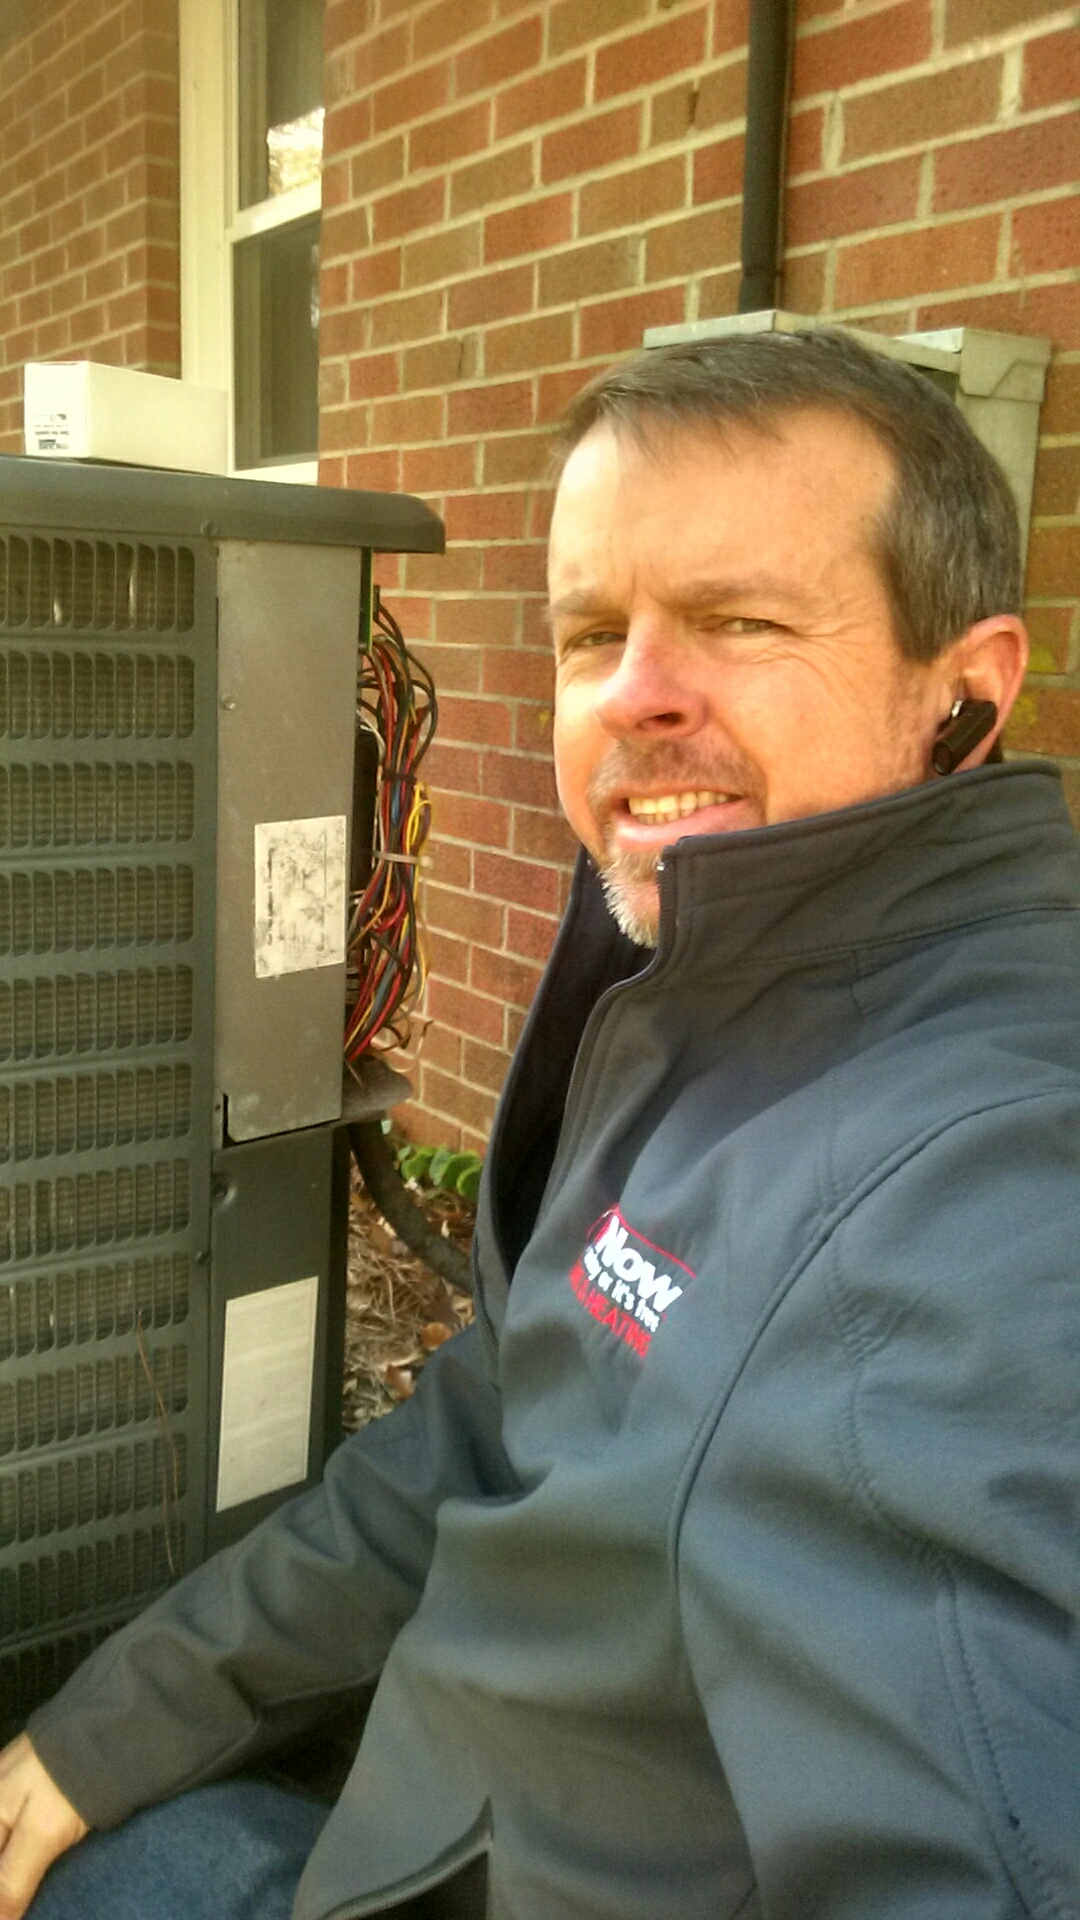 Christmas day HVAC repair service